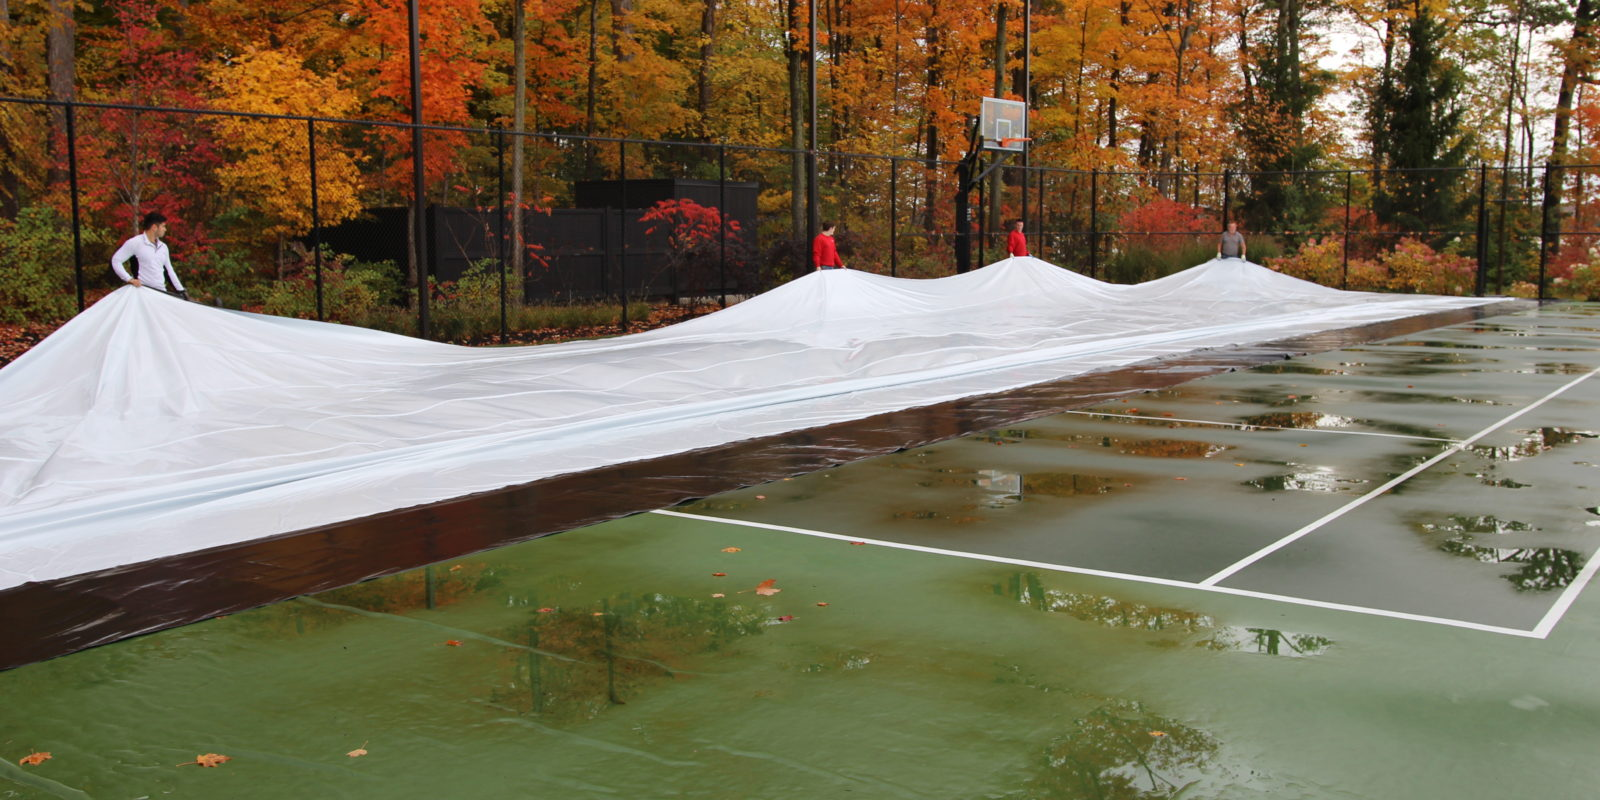 Portable refrigerated ice rink on tennis court